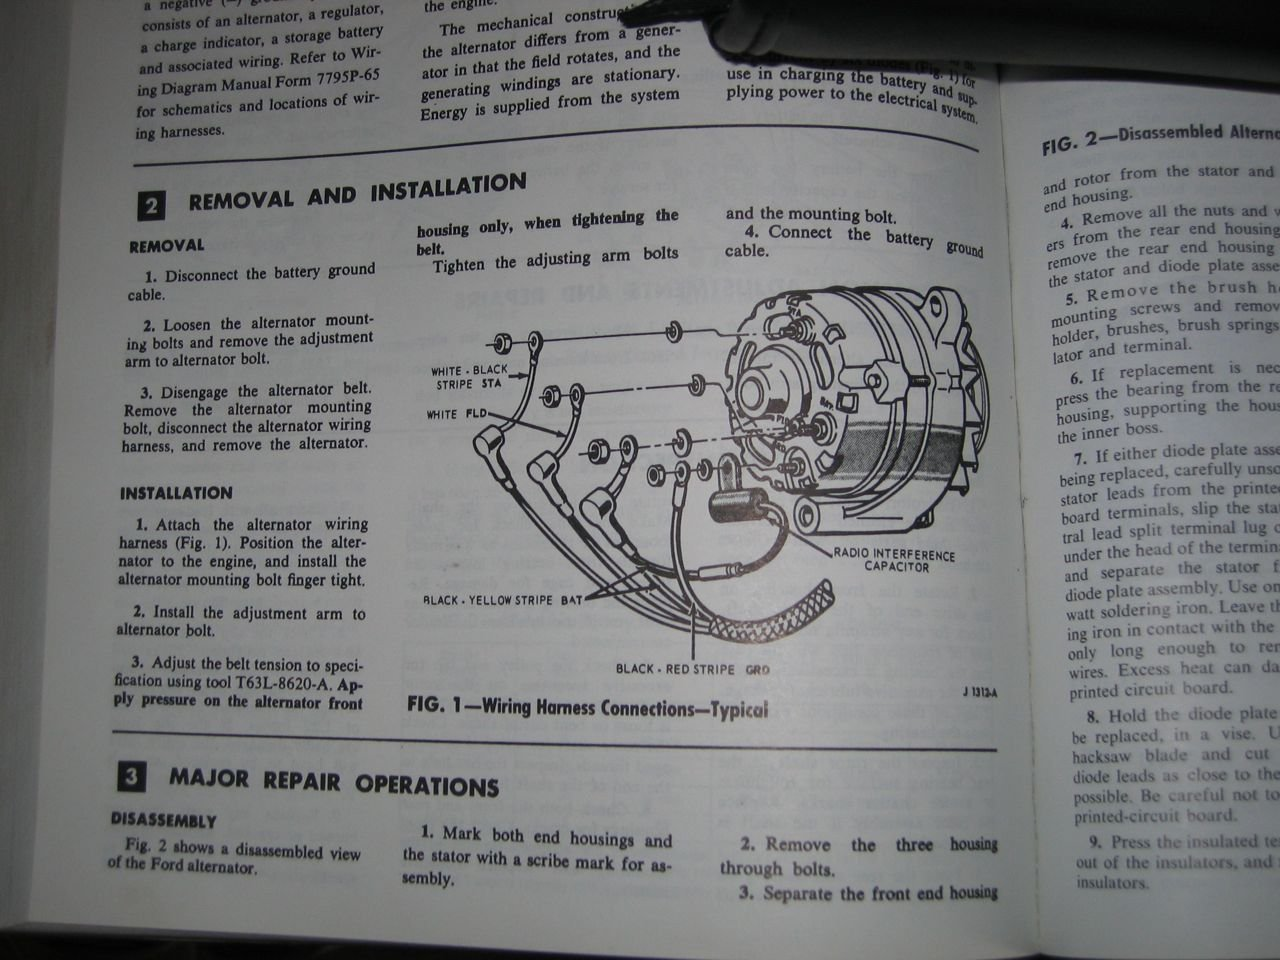 93328d1268767403 1966 mustang alternator wiring img_0749 1966 mustang alternator wiring ford mustang forum 68 Mustang Wiring Diagram at webbmarketing.co